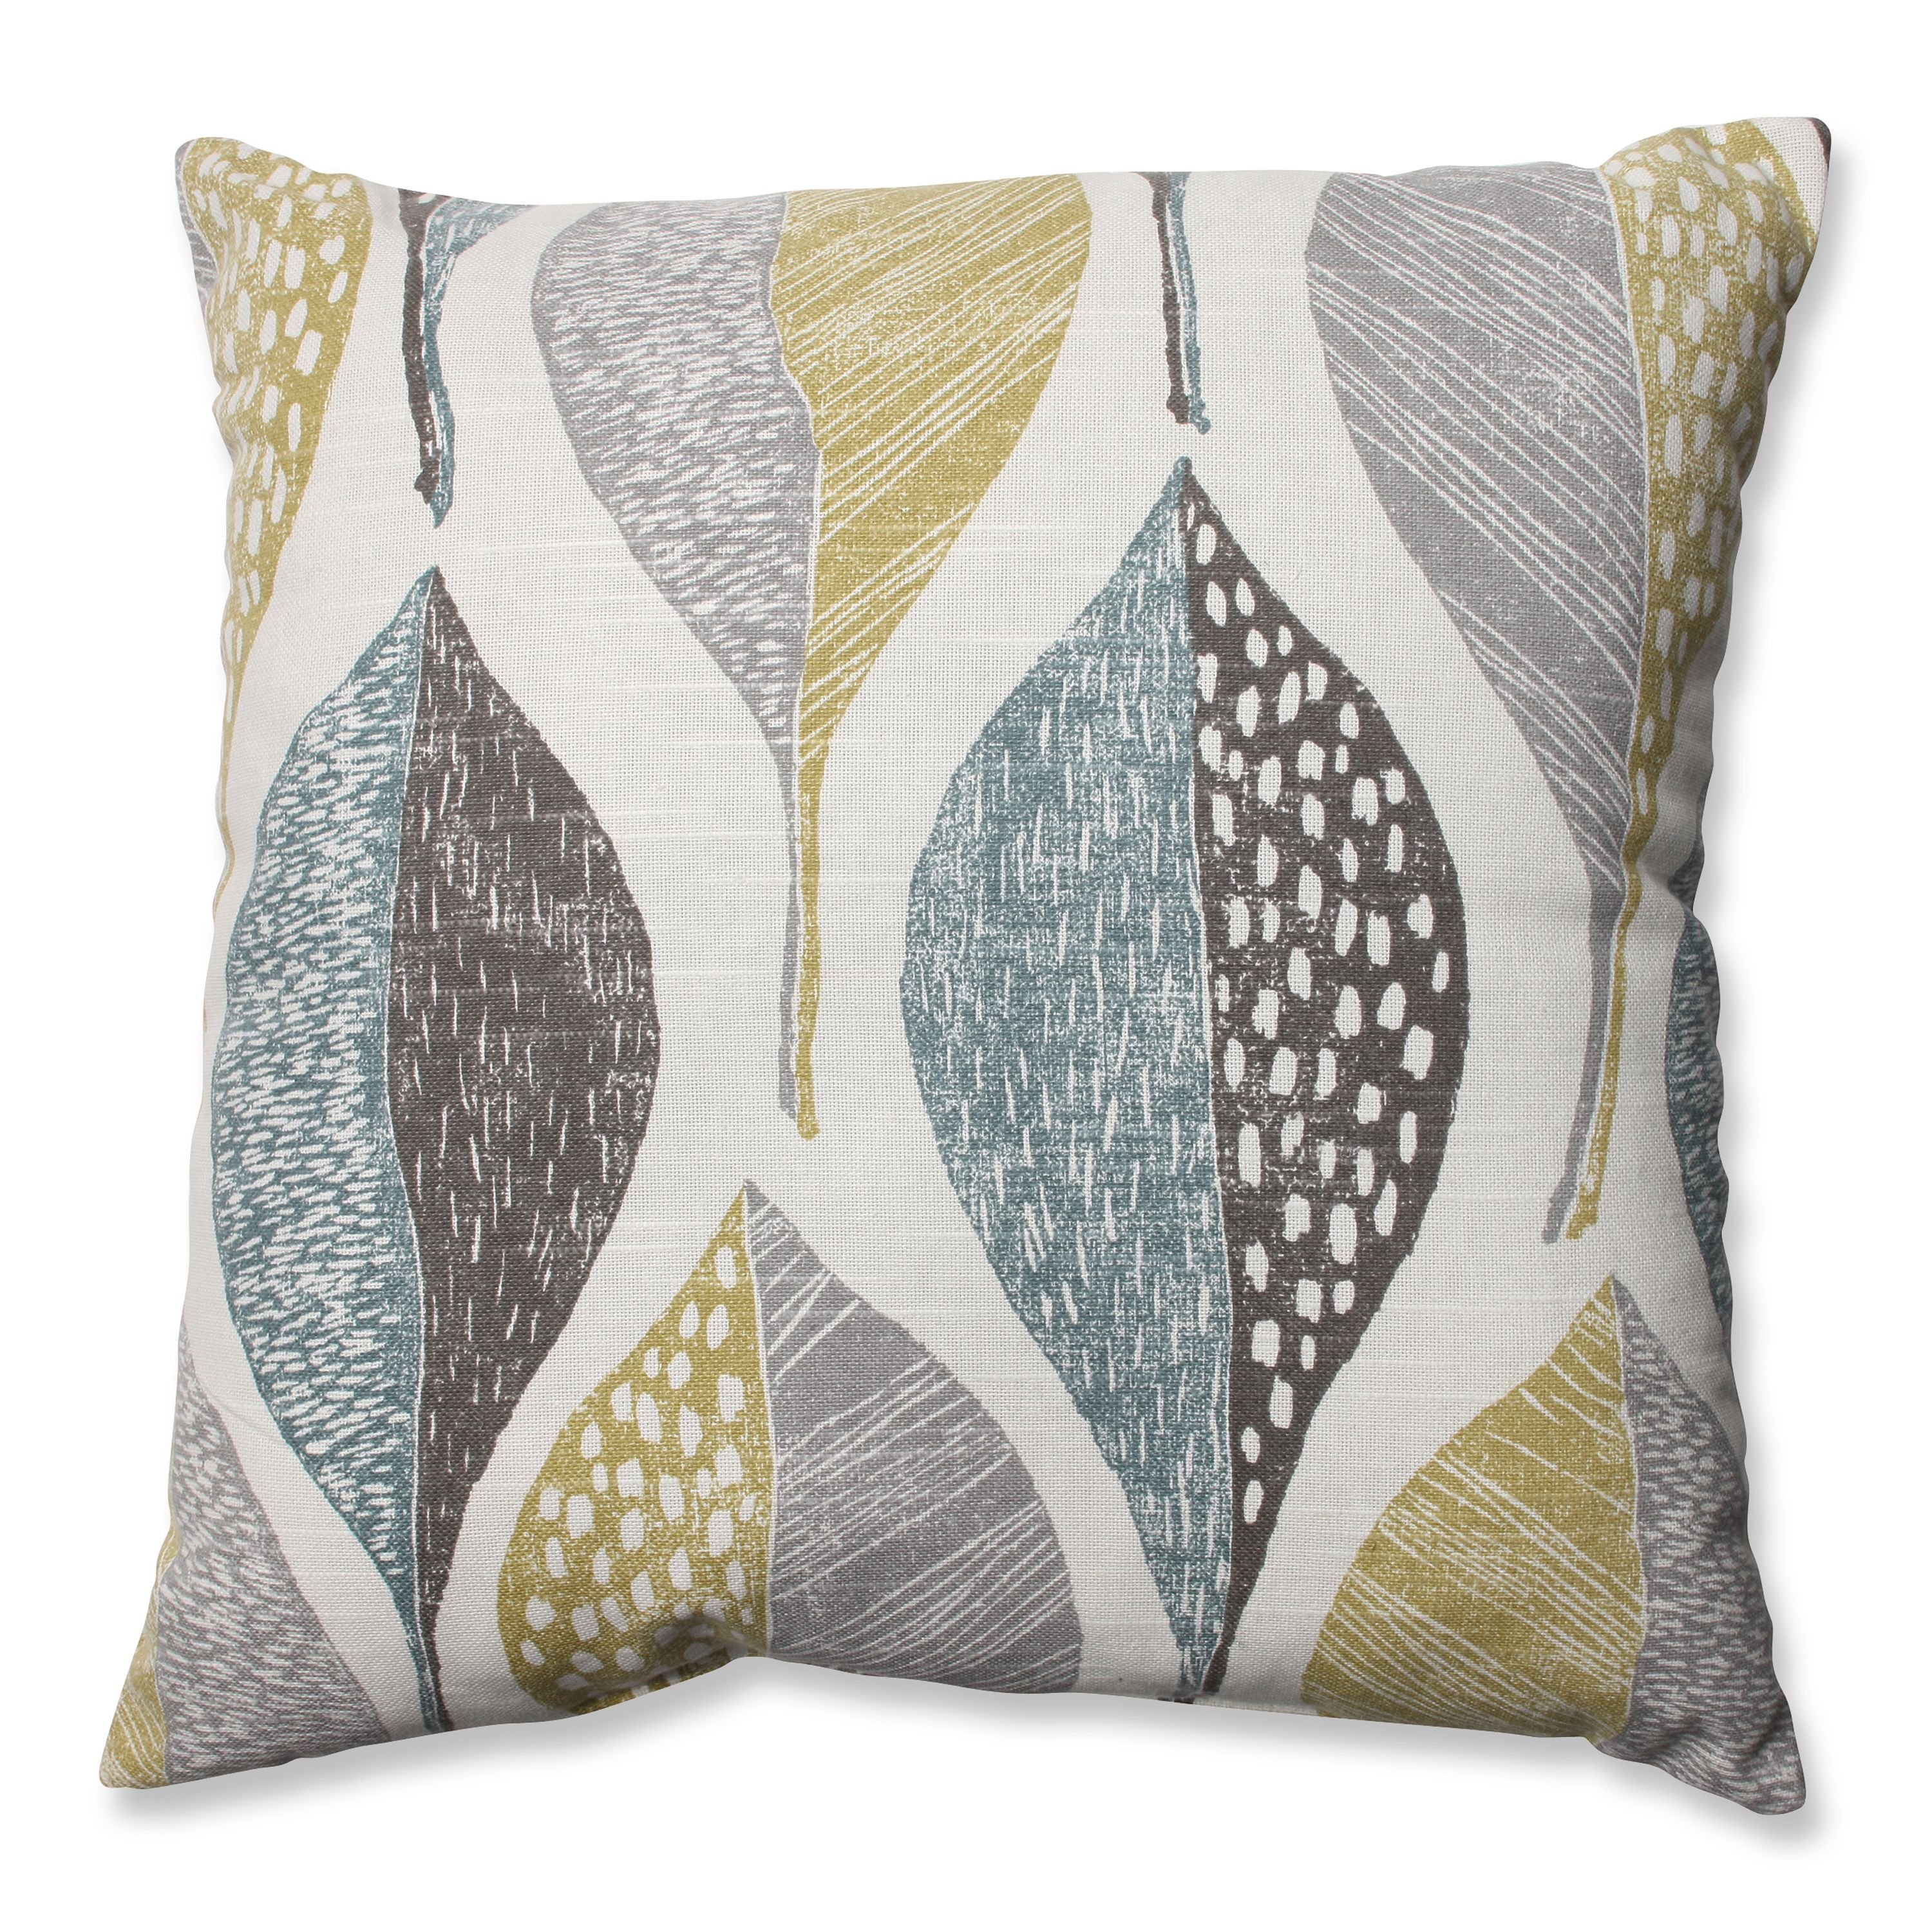 Brown and teal throw pillows - We Love The Touch Of Whimsy This Brown Transitional Patterned Throw Pillow Exudes Plush